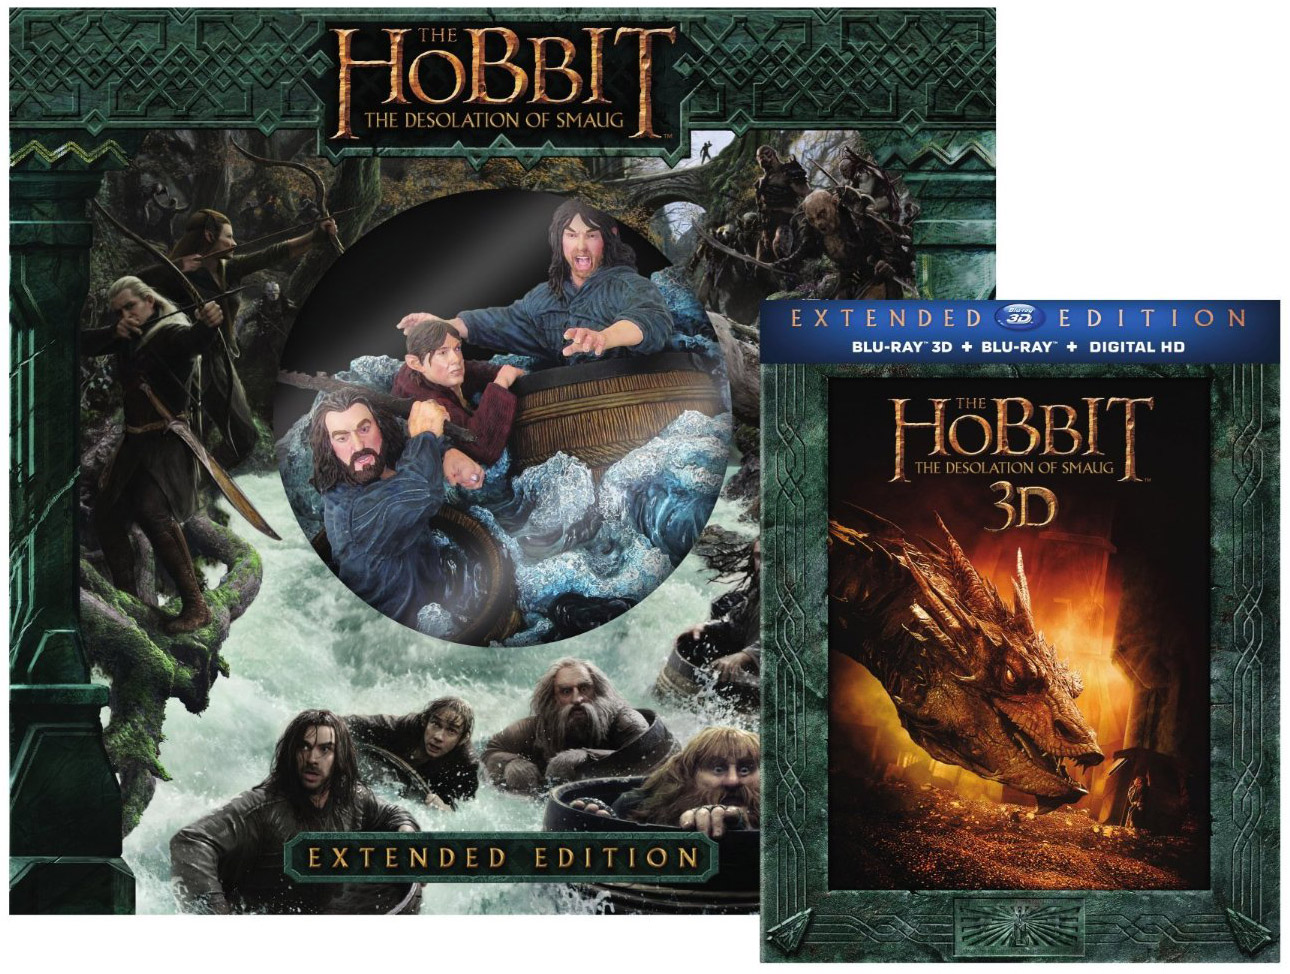 The Hobbit The Desolation of Smaug Extended Edition Amazon Exclusive